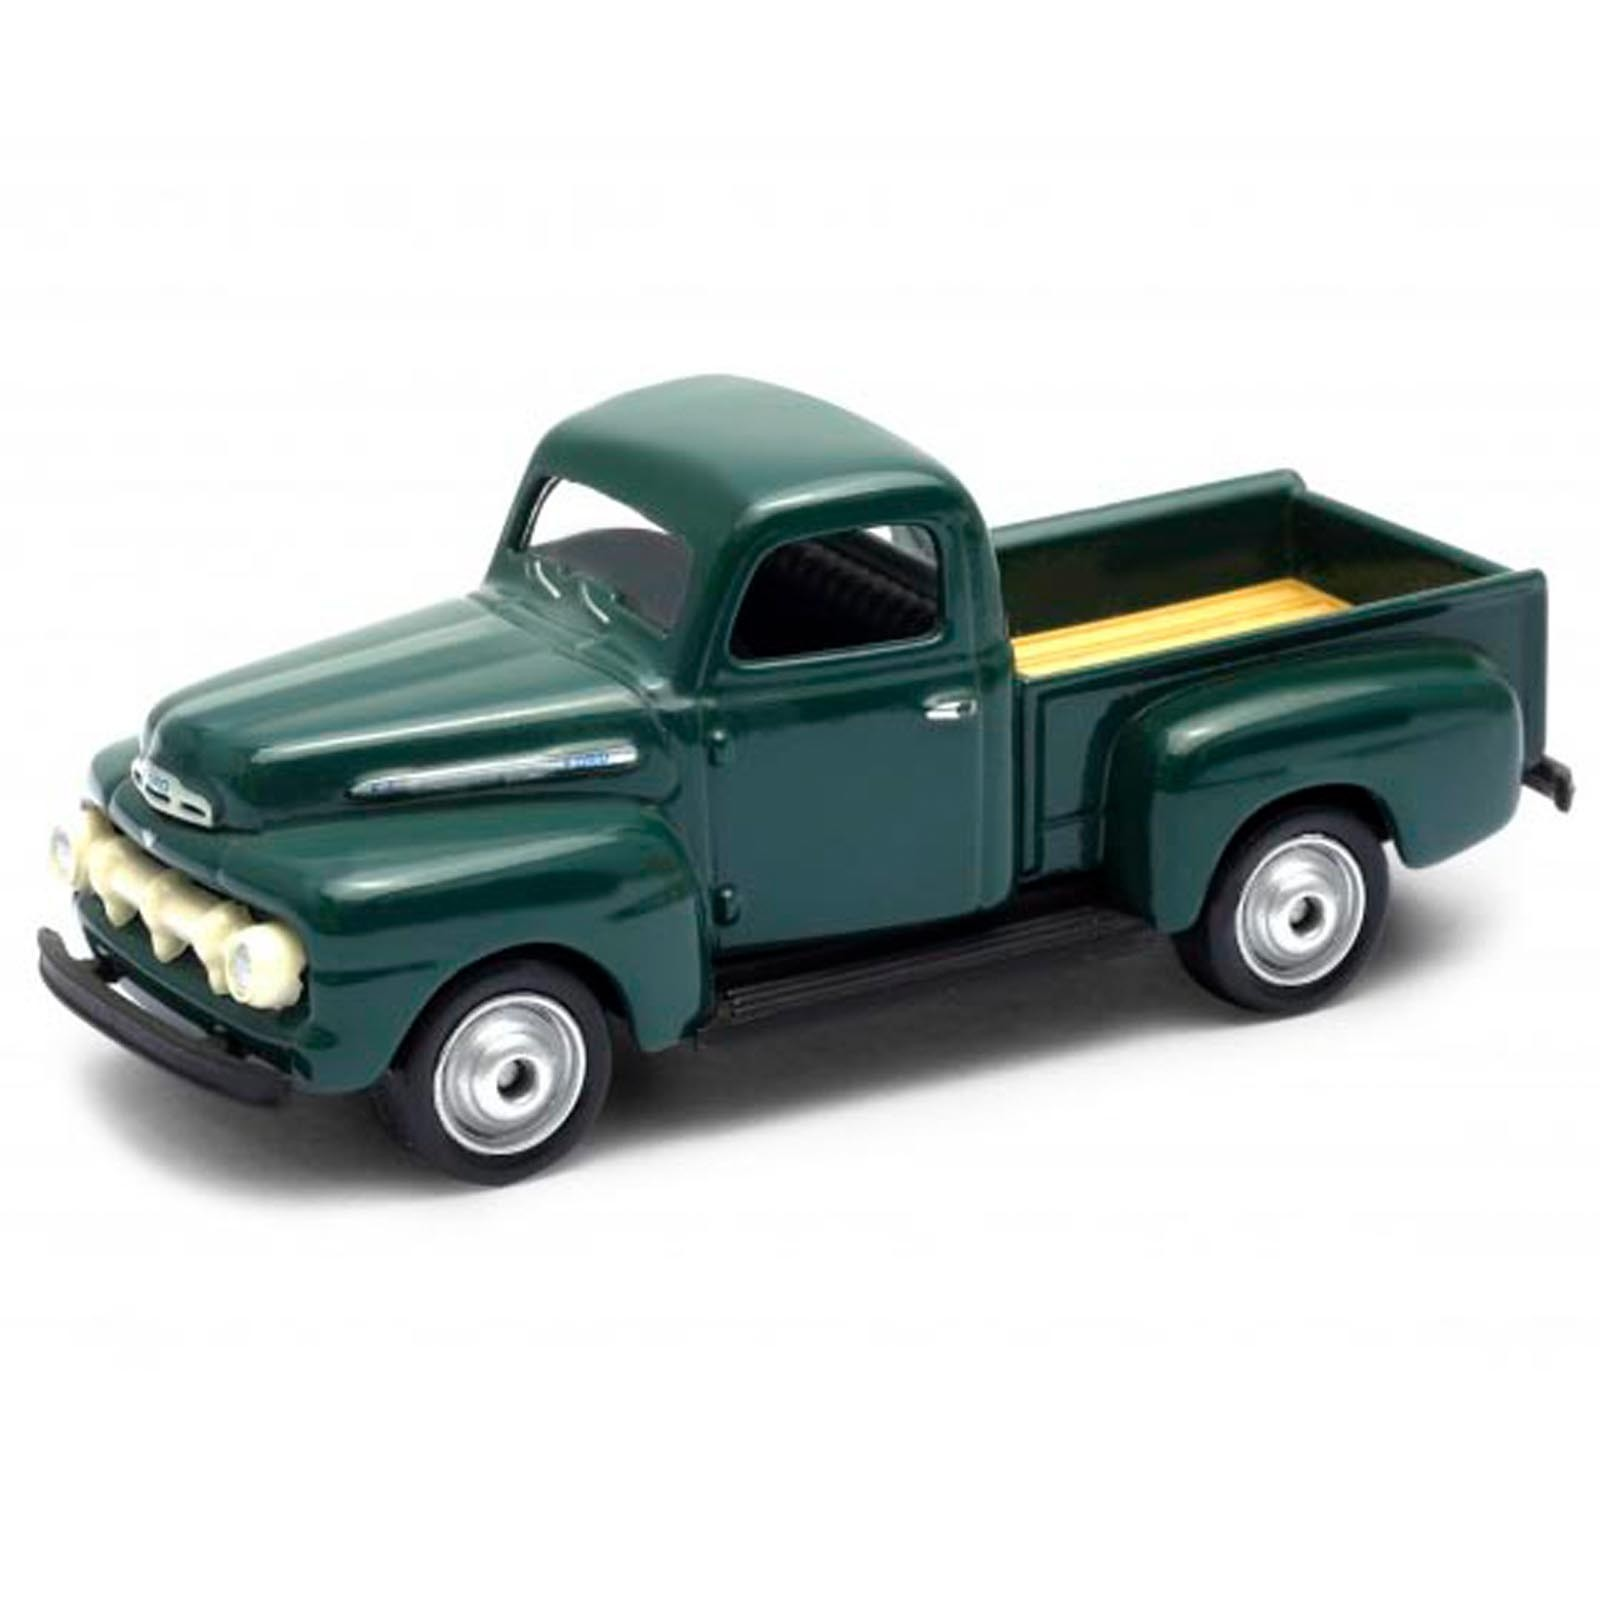 Miniatura - 1:64 - 1951 Ford F1 PIck-Up - California Minis - Welly